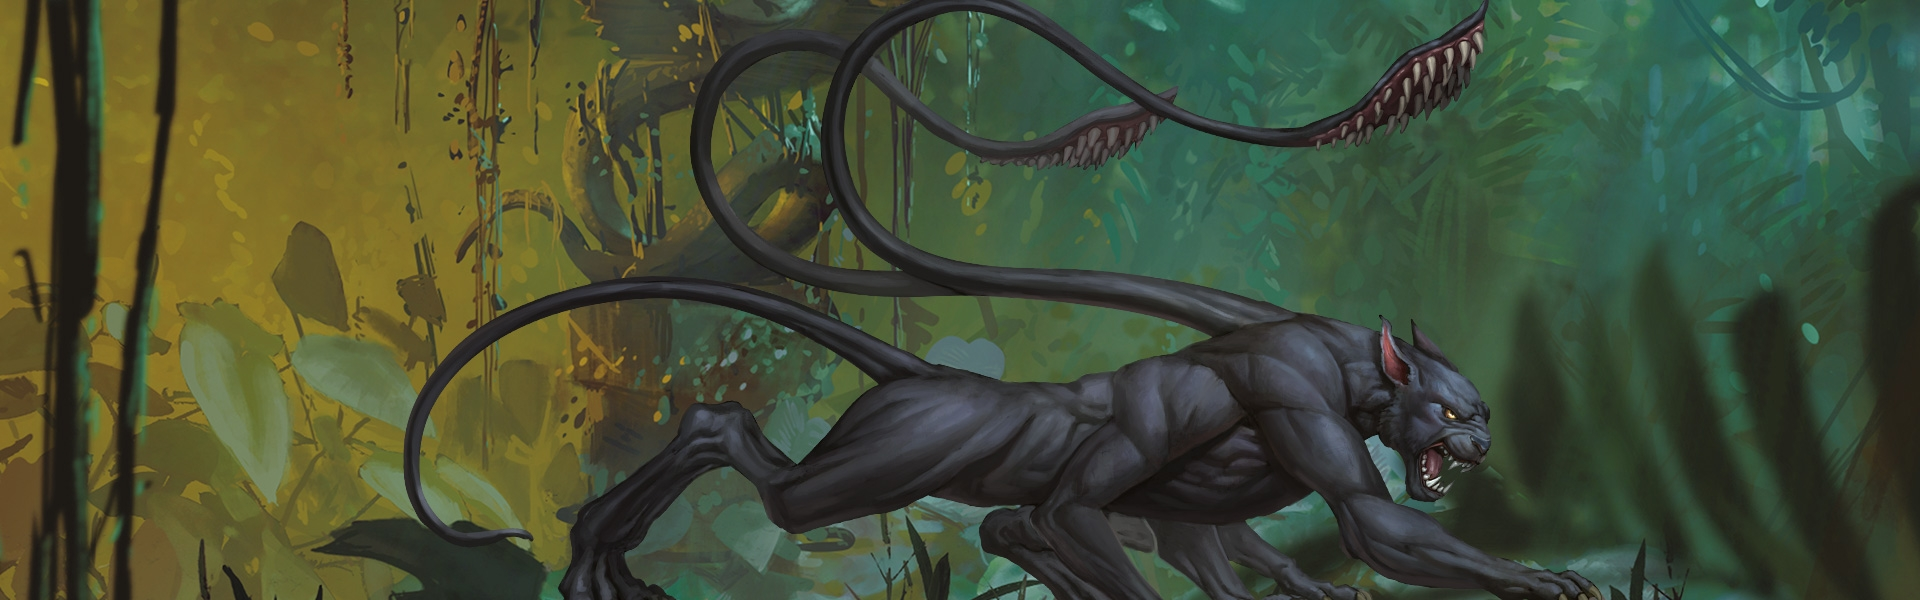 DisplacerBeast_Header